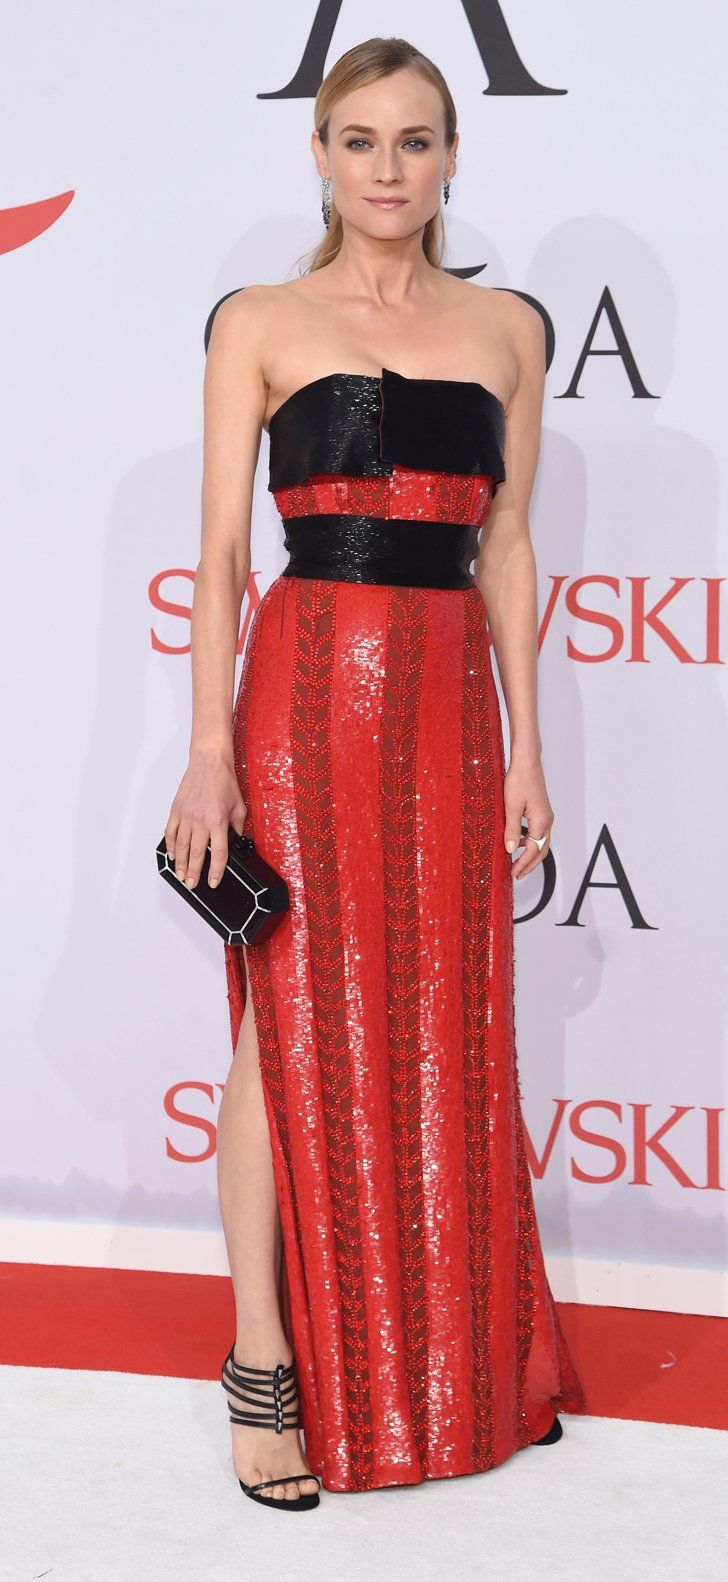 Who Is the CFDA Awards Best Dressed?